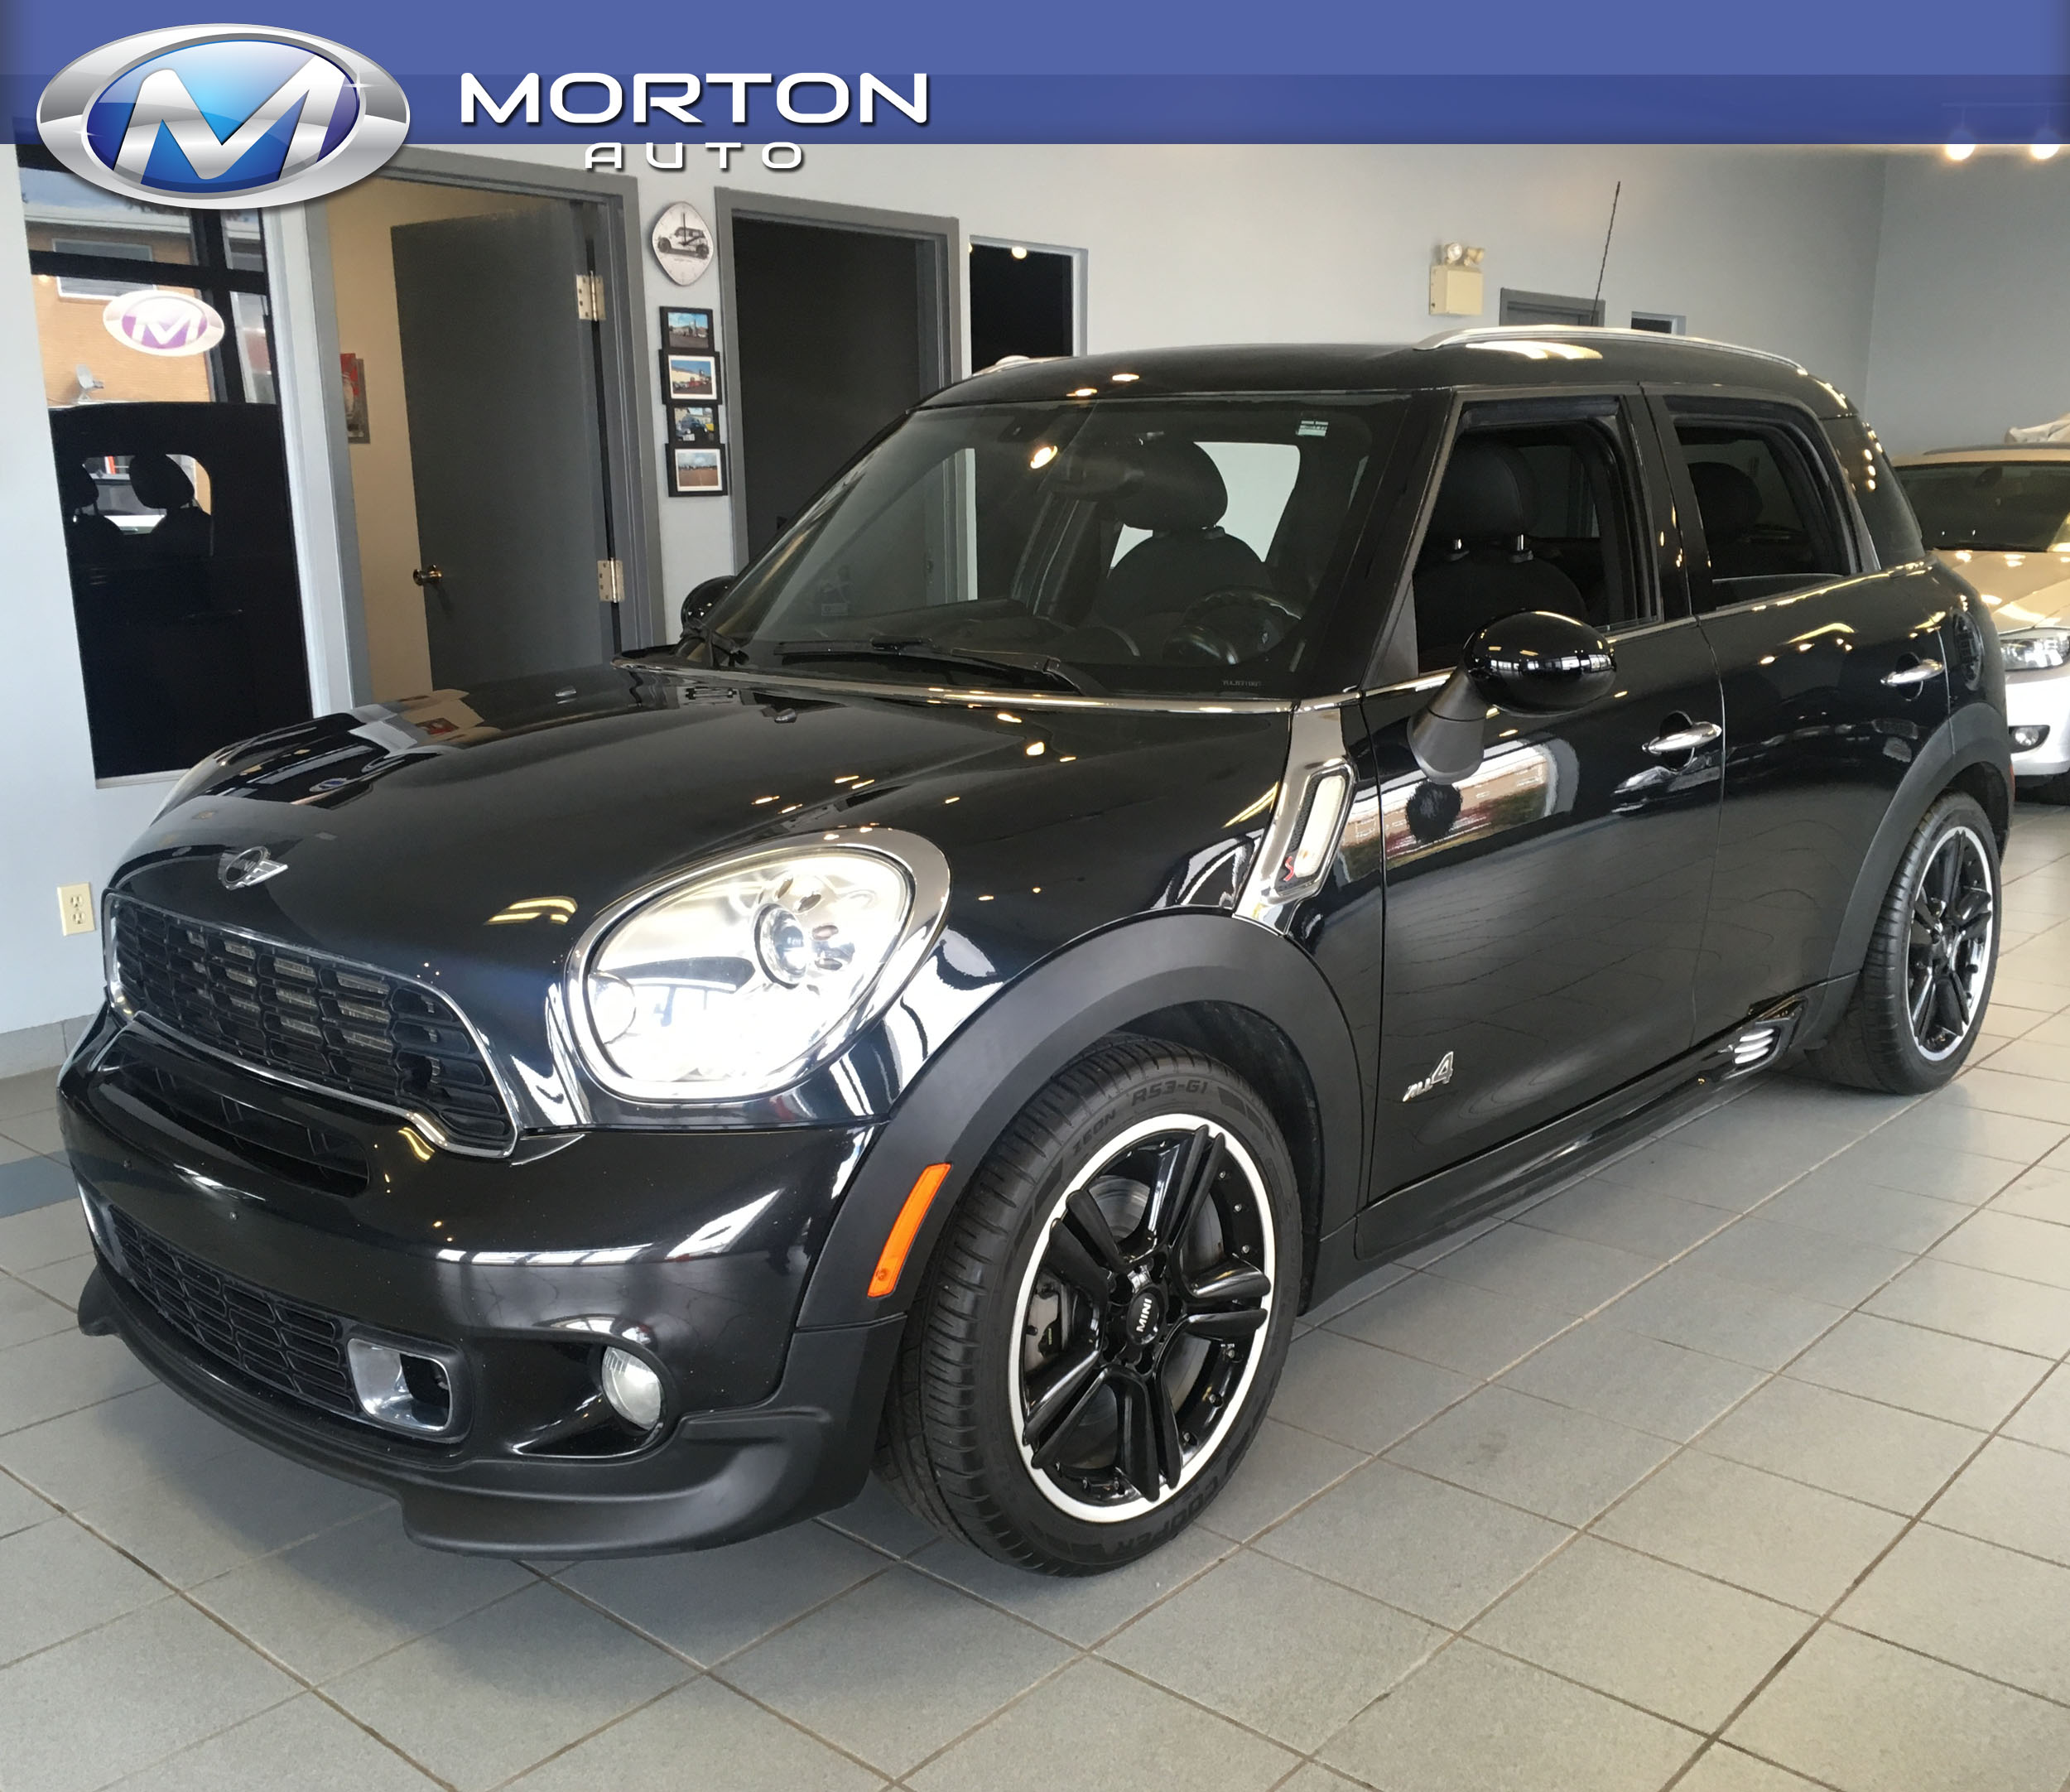 2011 Mini Countryman S All4 Morton Auto Moncton Nb R56 Fuse Box All Wheel Drive